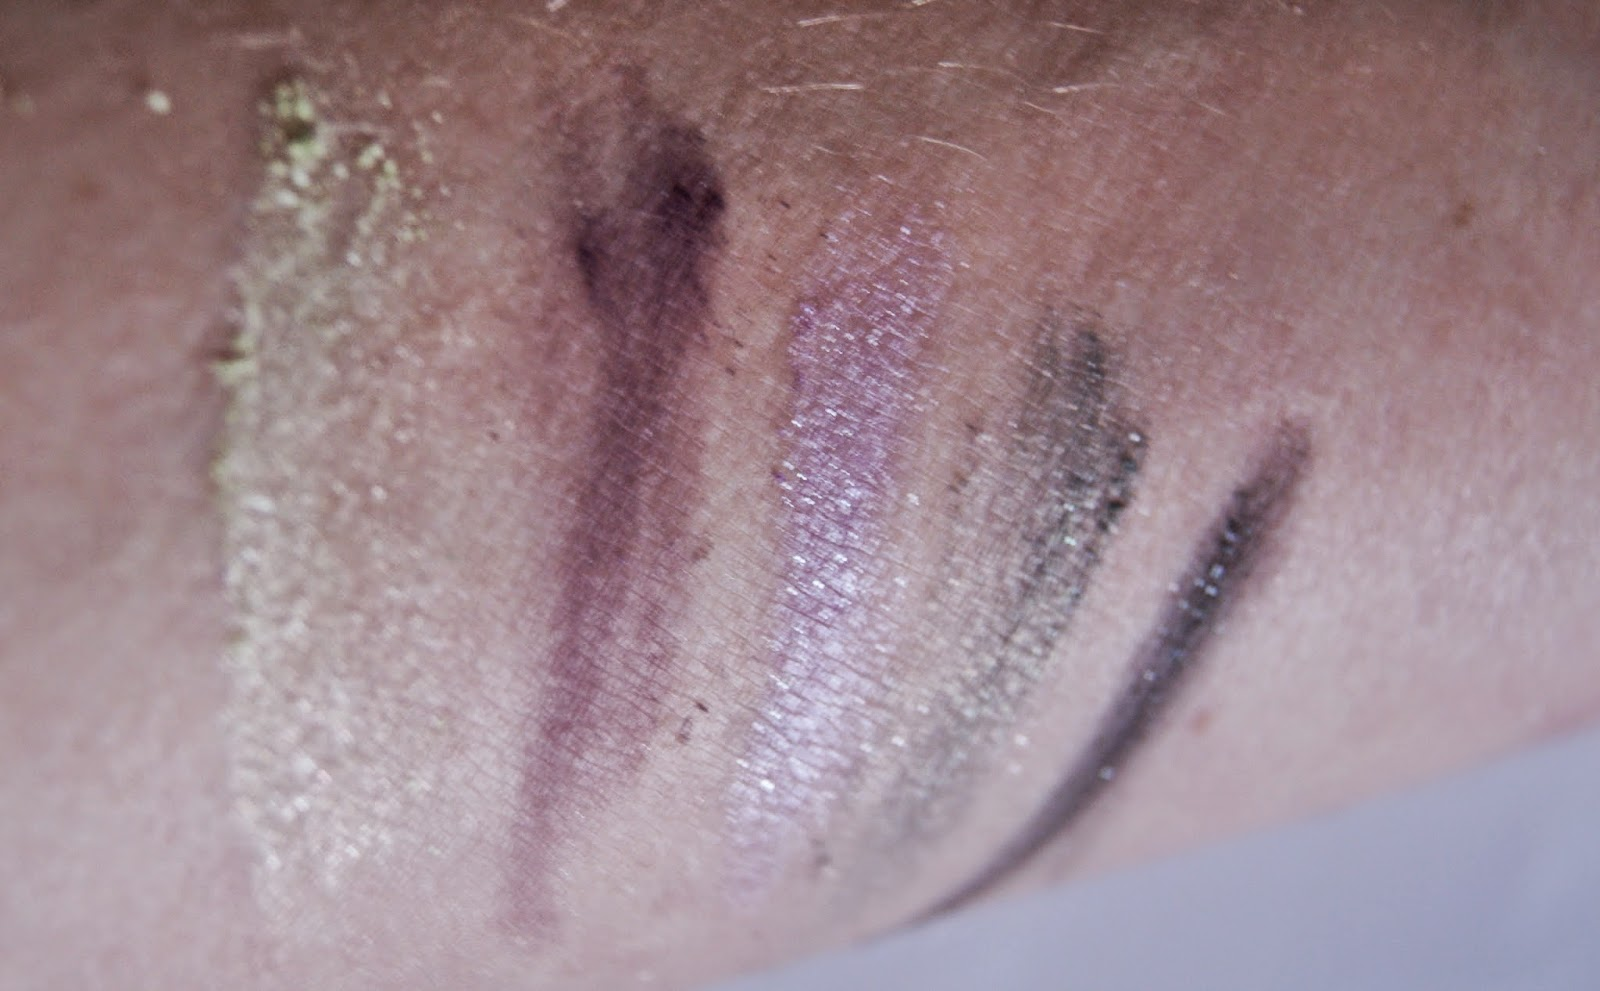 Revlon Colorstay Shadowlinks Eyeshadow in Lime, Plum, Lilac, Moss, and Onyx, Beauty, Makeup, Review, Melanie_Ps,The Purple Scarf, Toronto